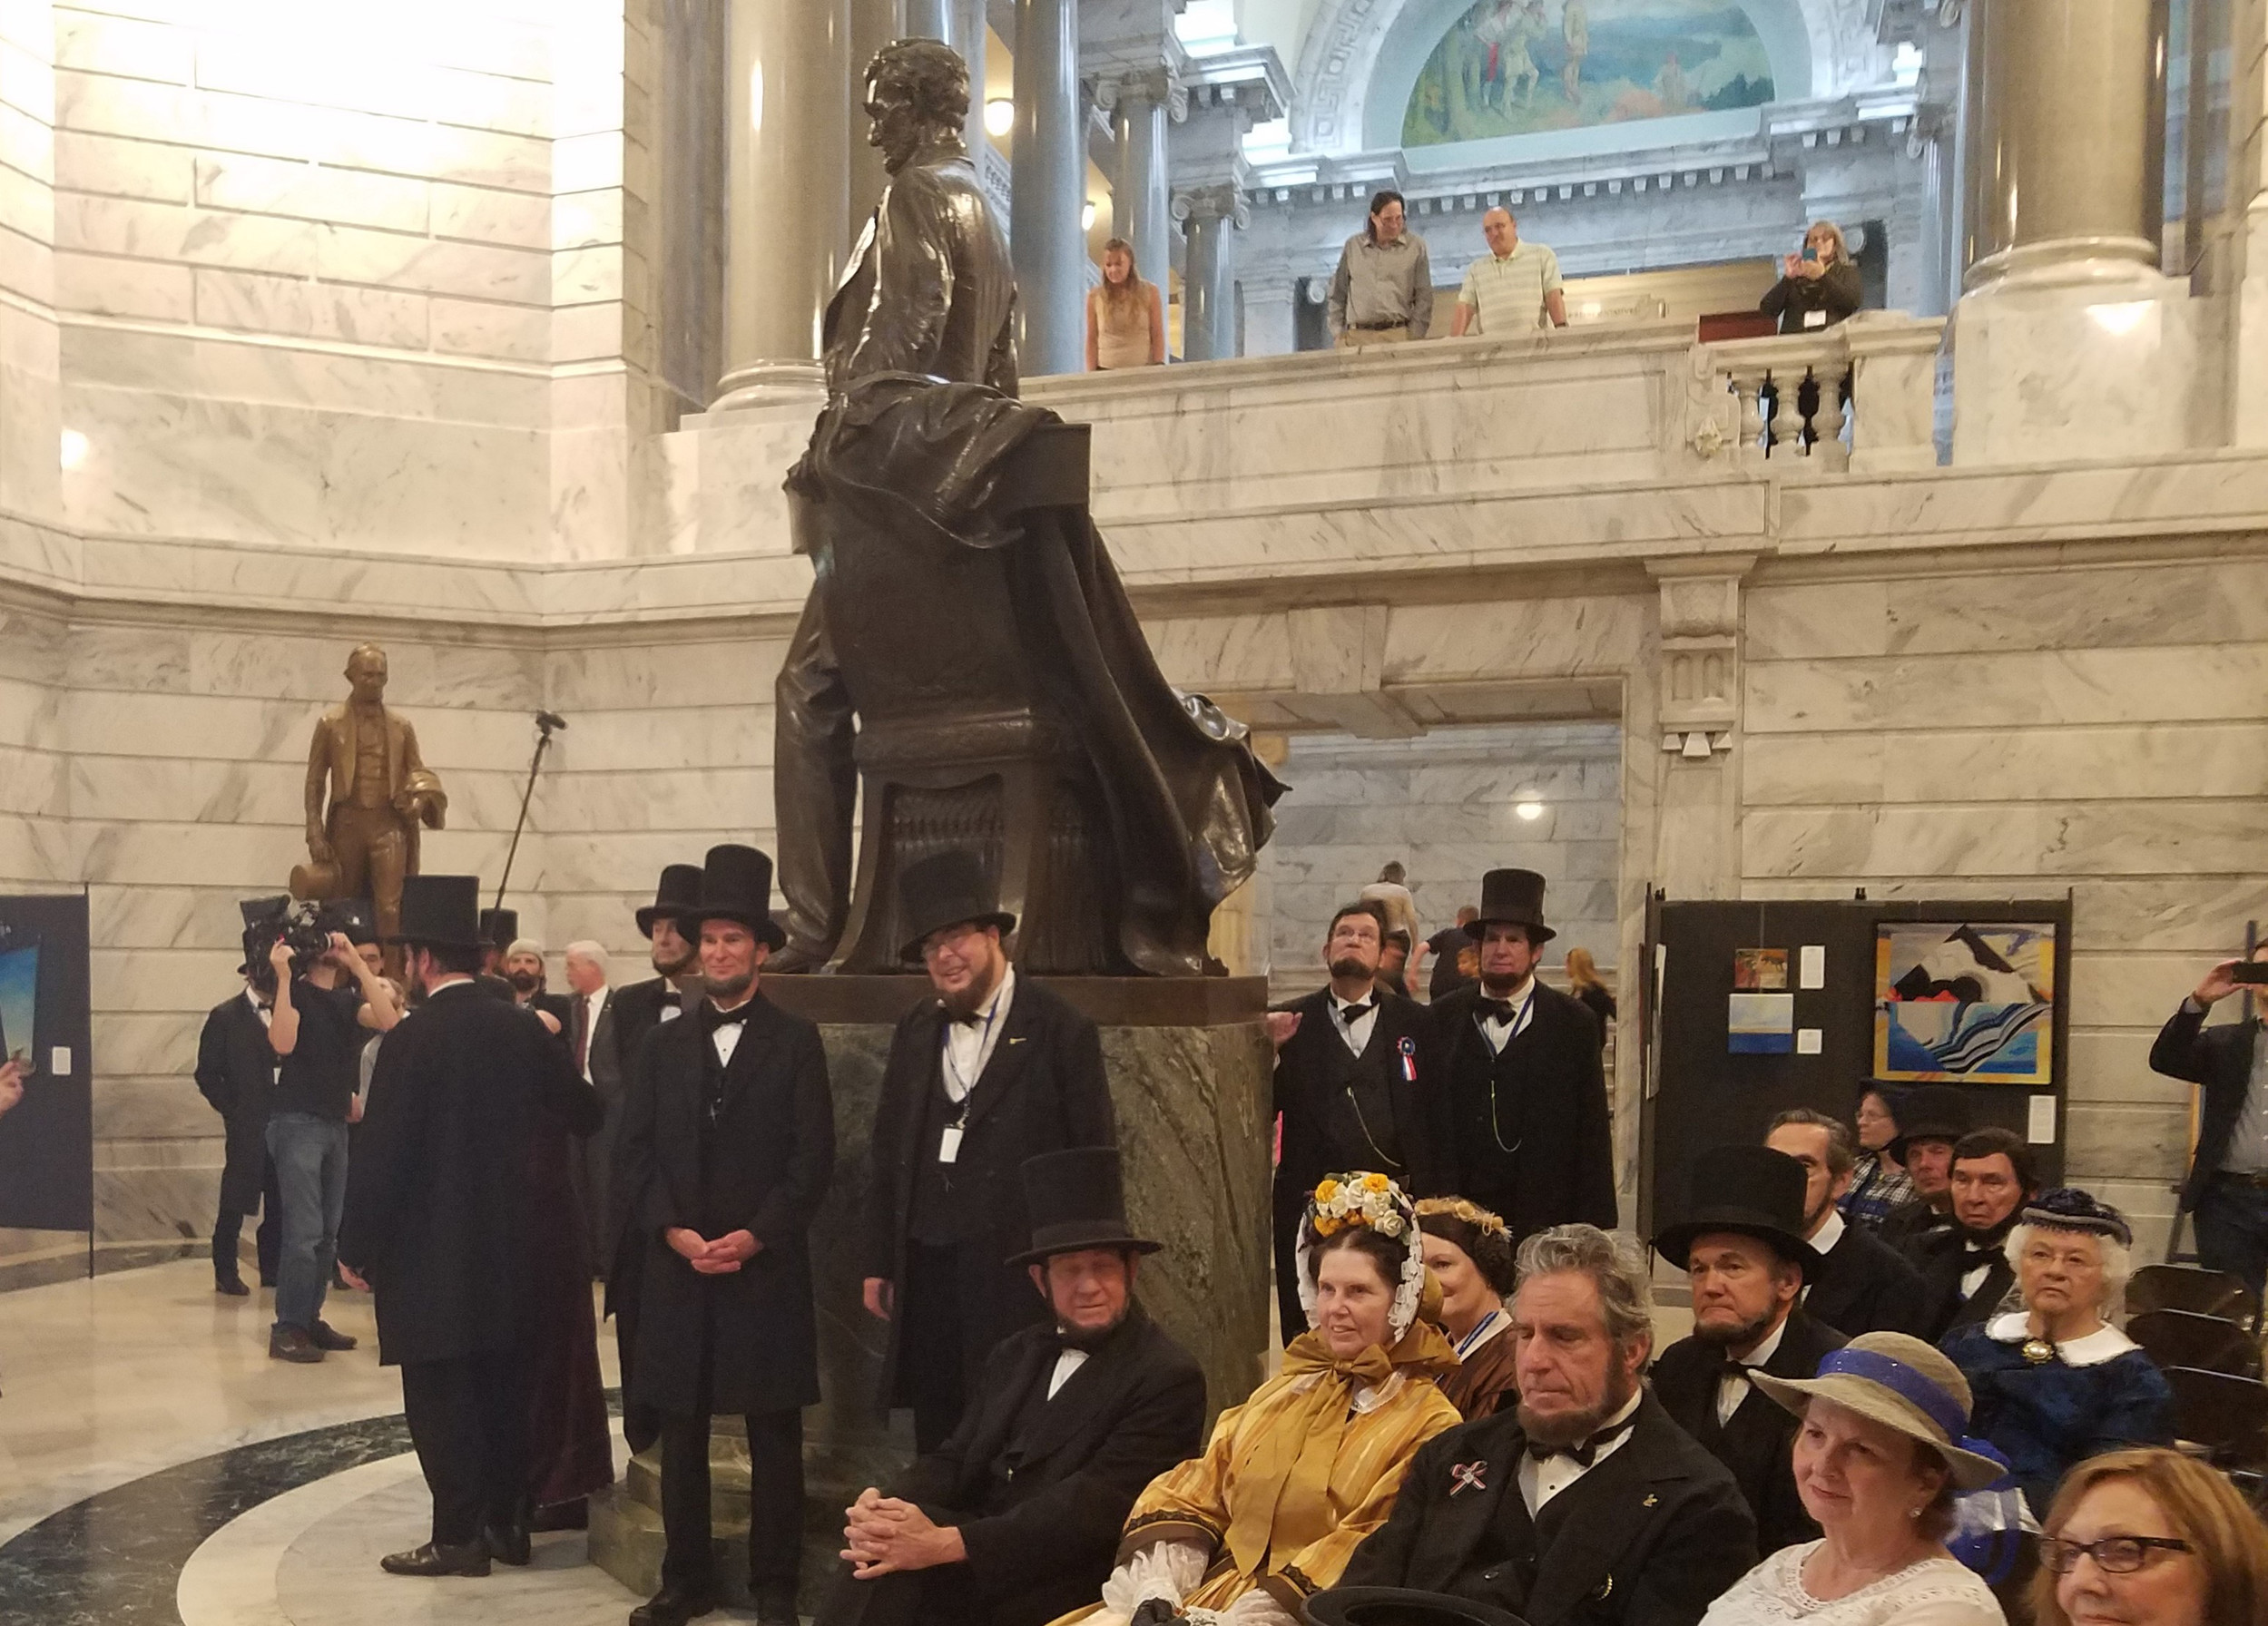 More than 25 presenters in full Abraham Lincoln costumes, along with around a dozen Mary Todd Lincolns, toured the Capitol on Friday, April 21, as part of the 23rd annual convention of Lincoln presenters. (Kentucky Today/Tom Latek)